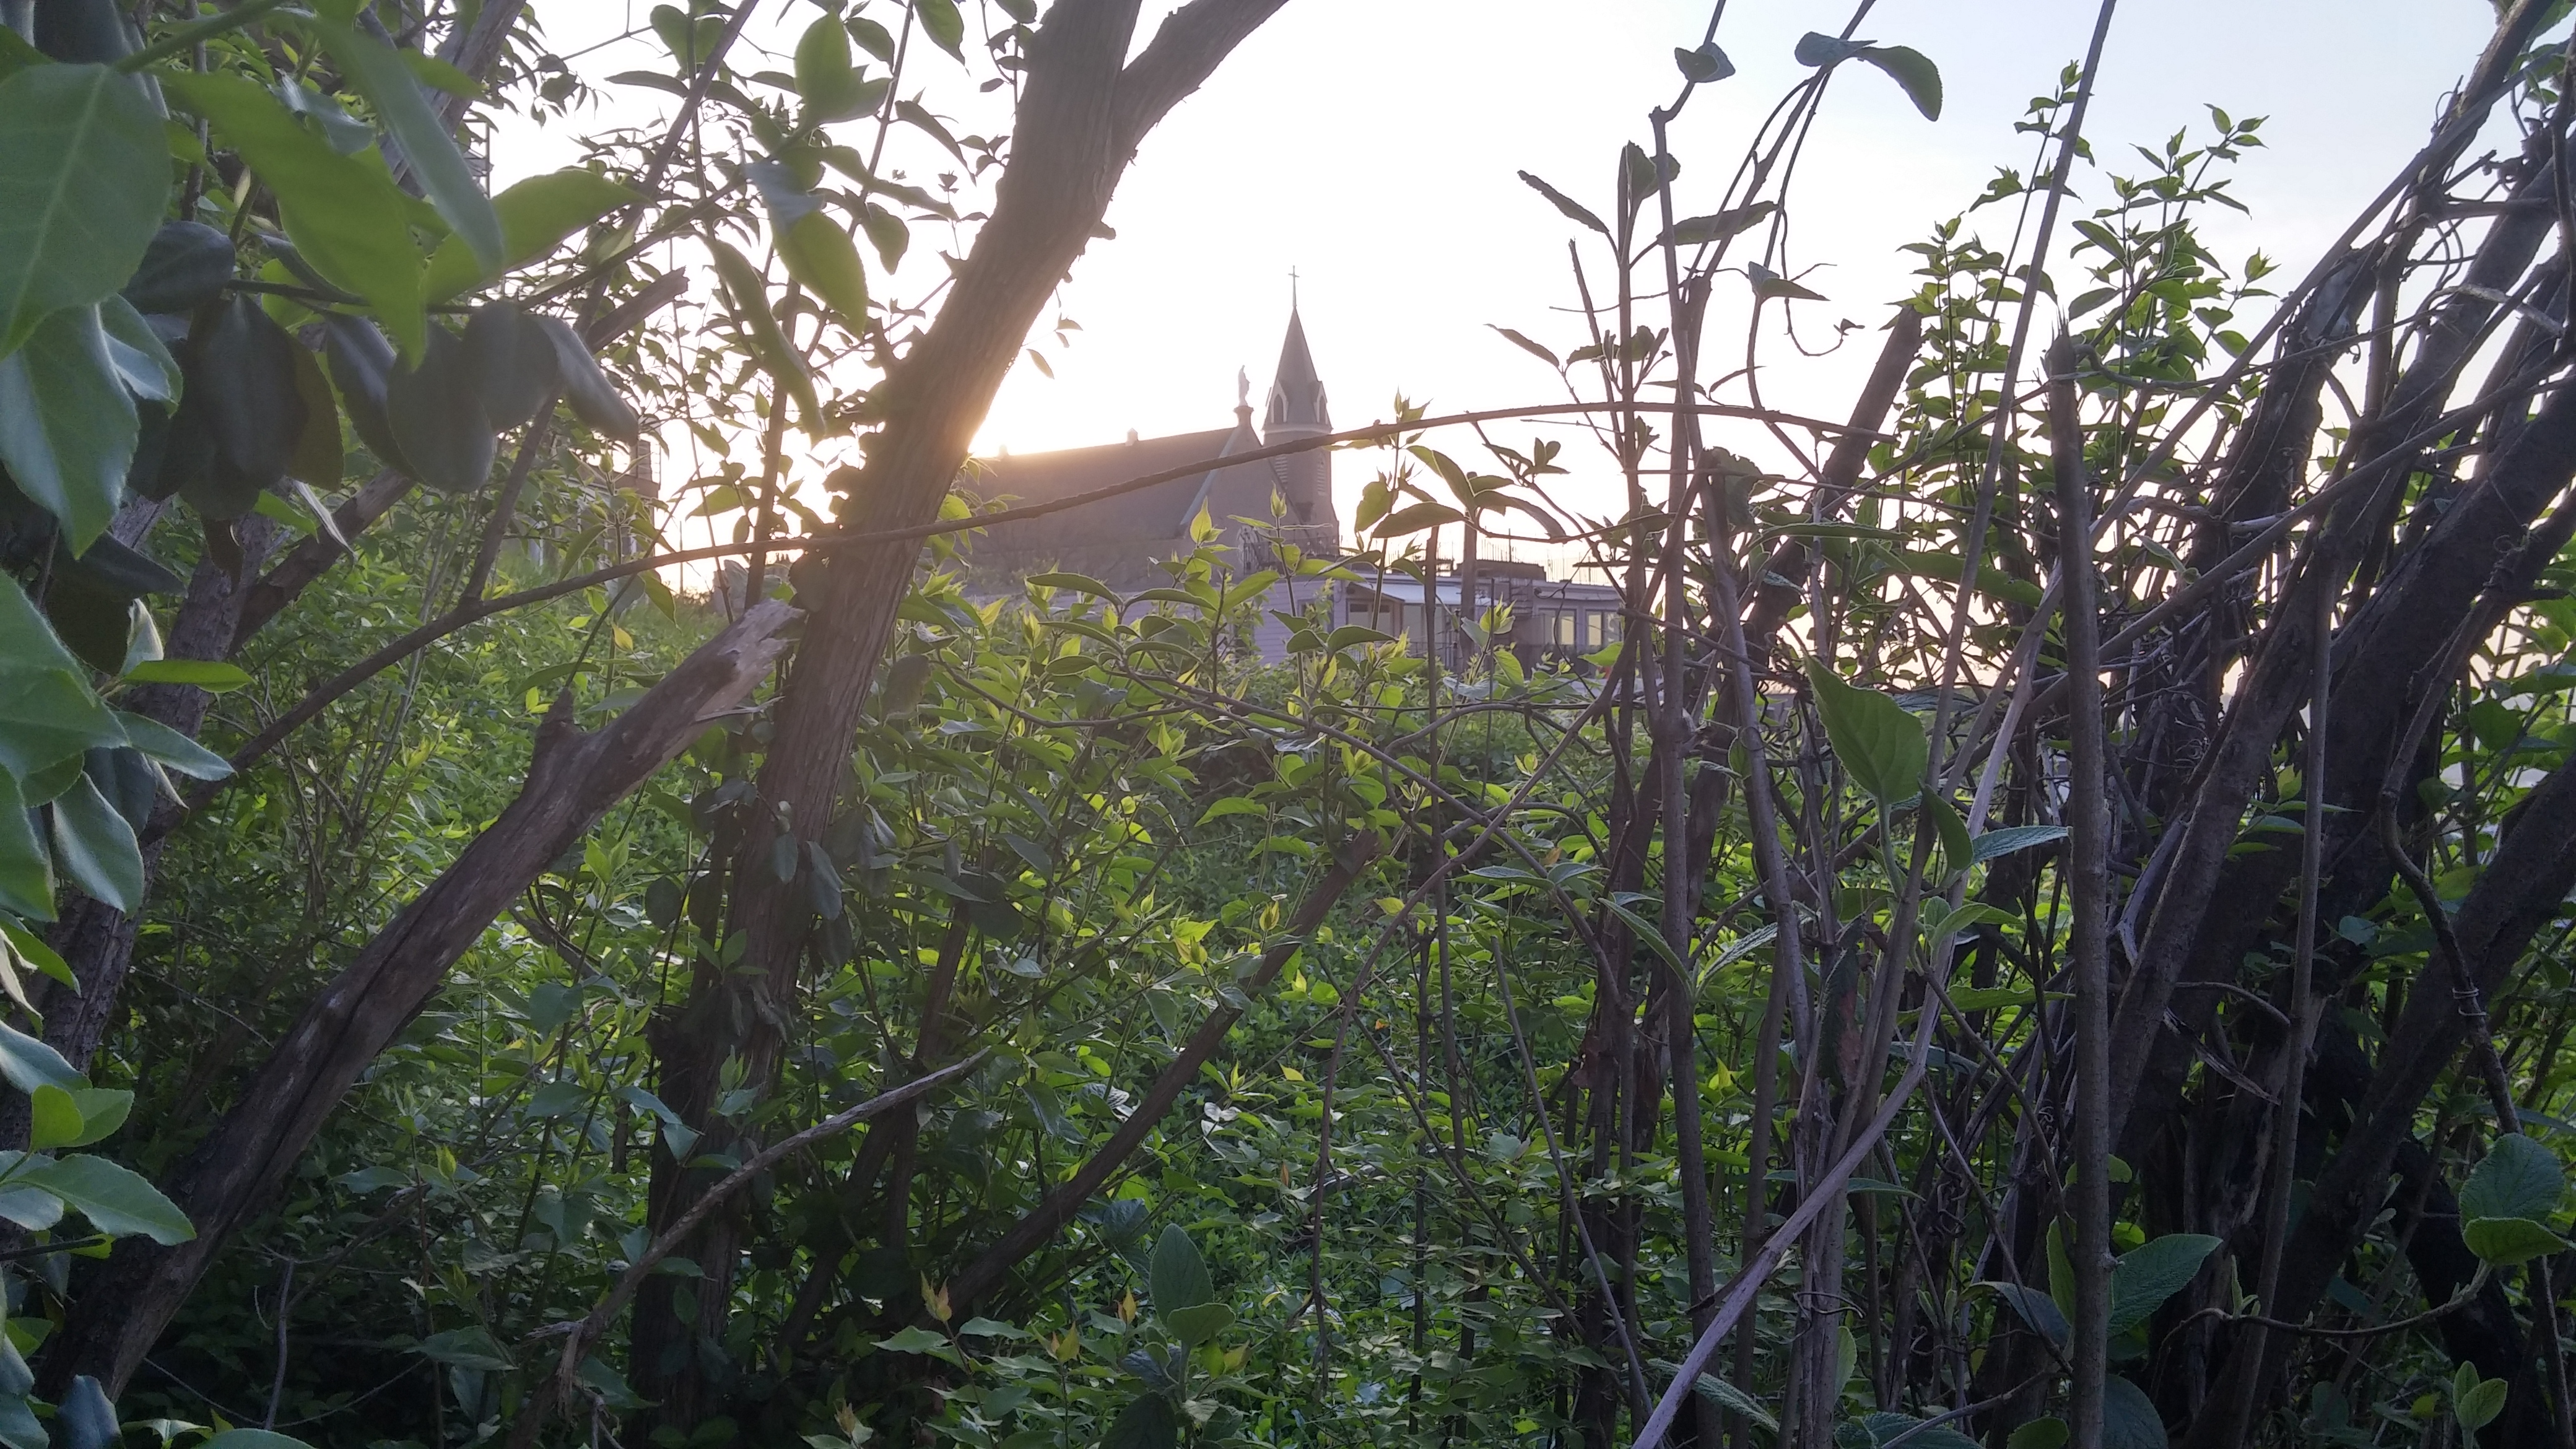 As one walks away from a prayerful morning, Holy Cross Immaculata Church in the distance. (Greg Hartman/CT Photo)